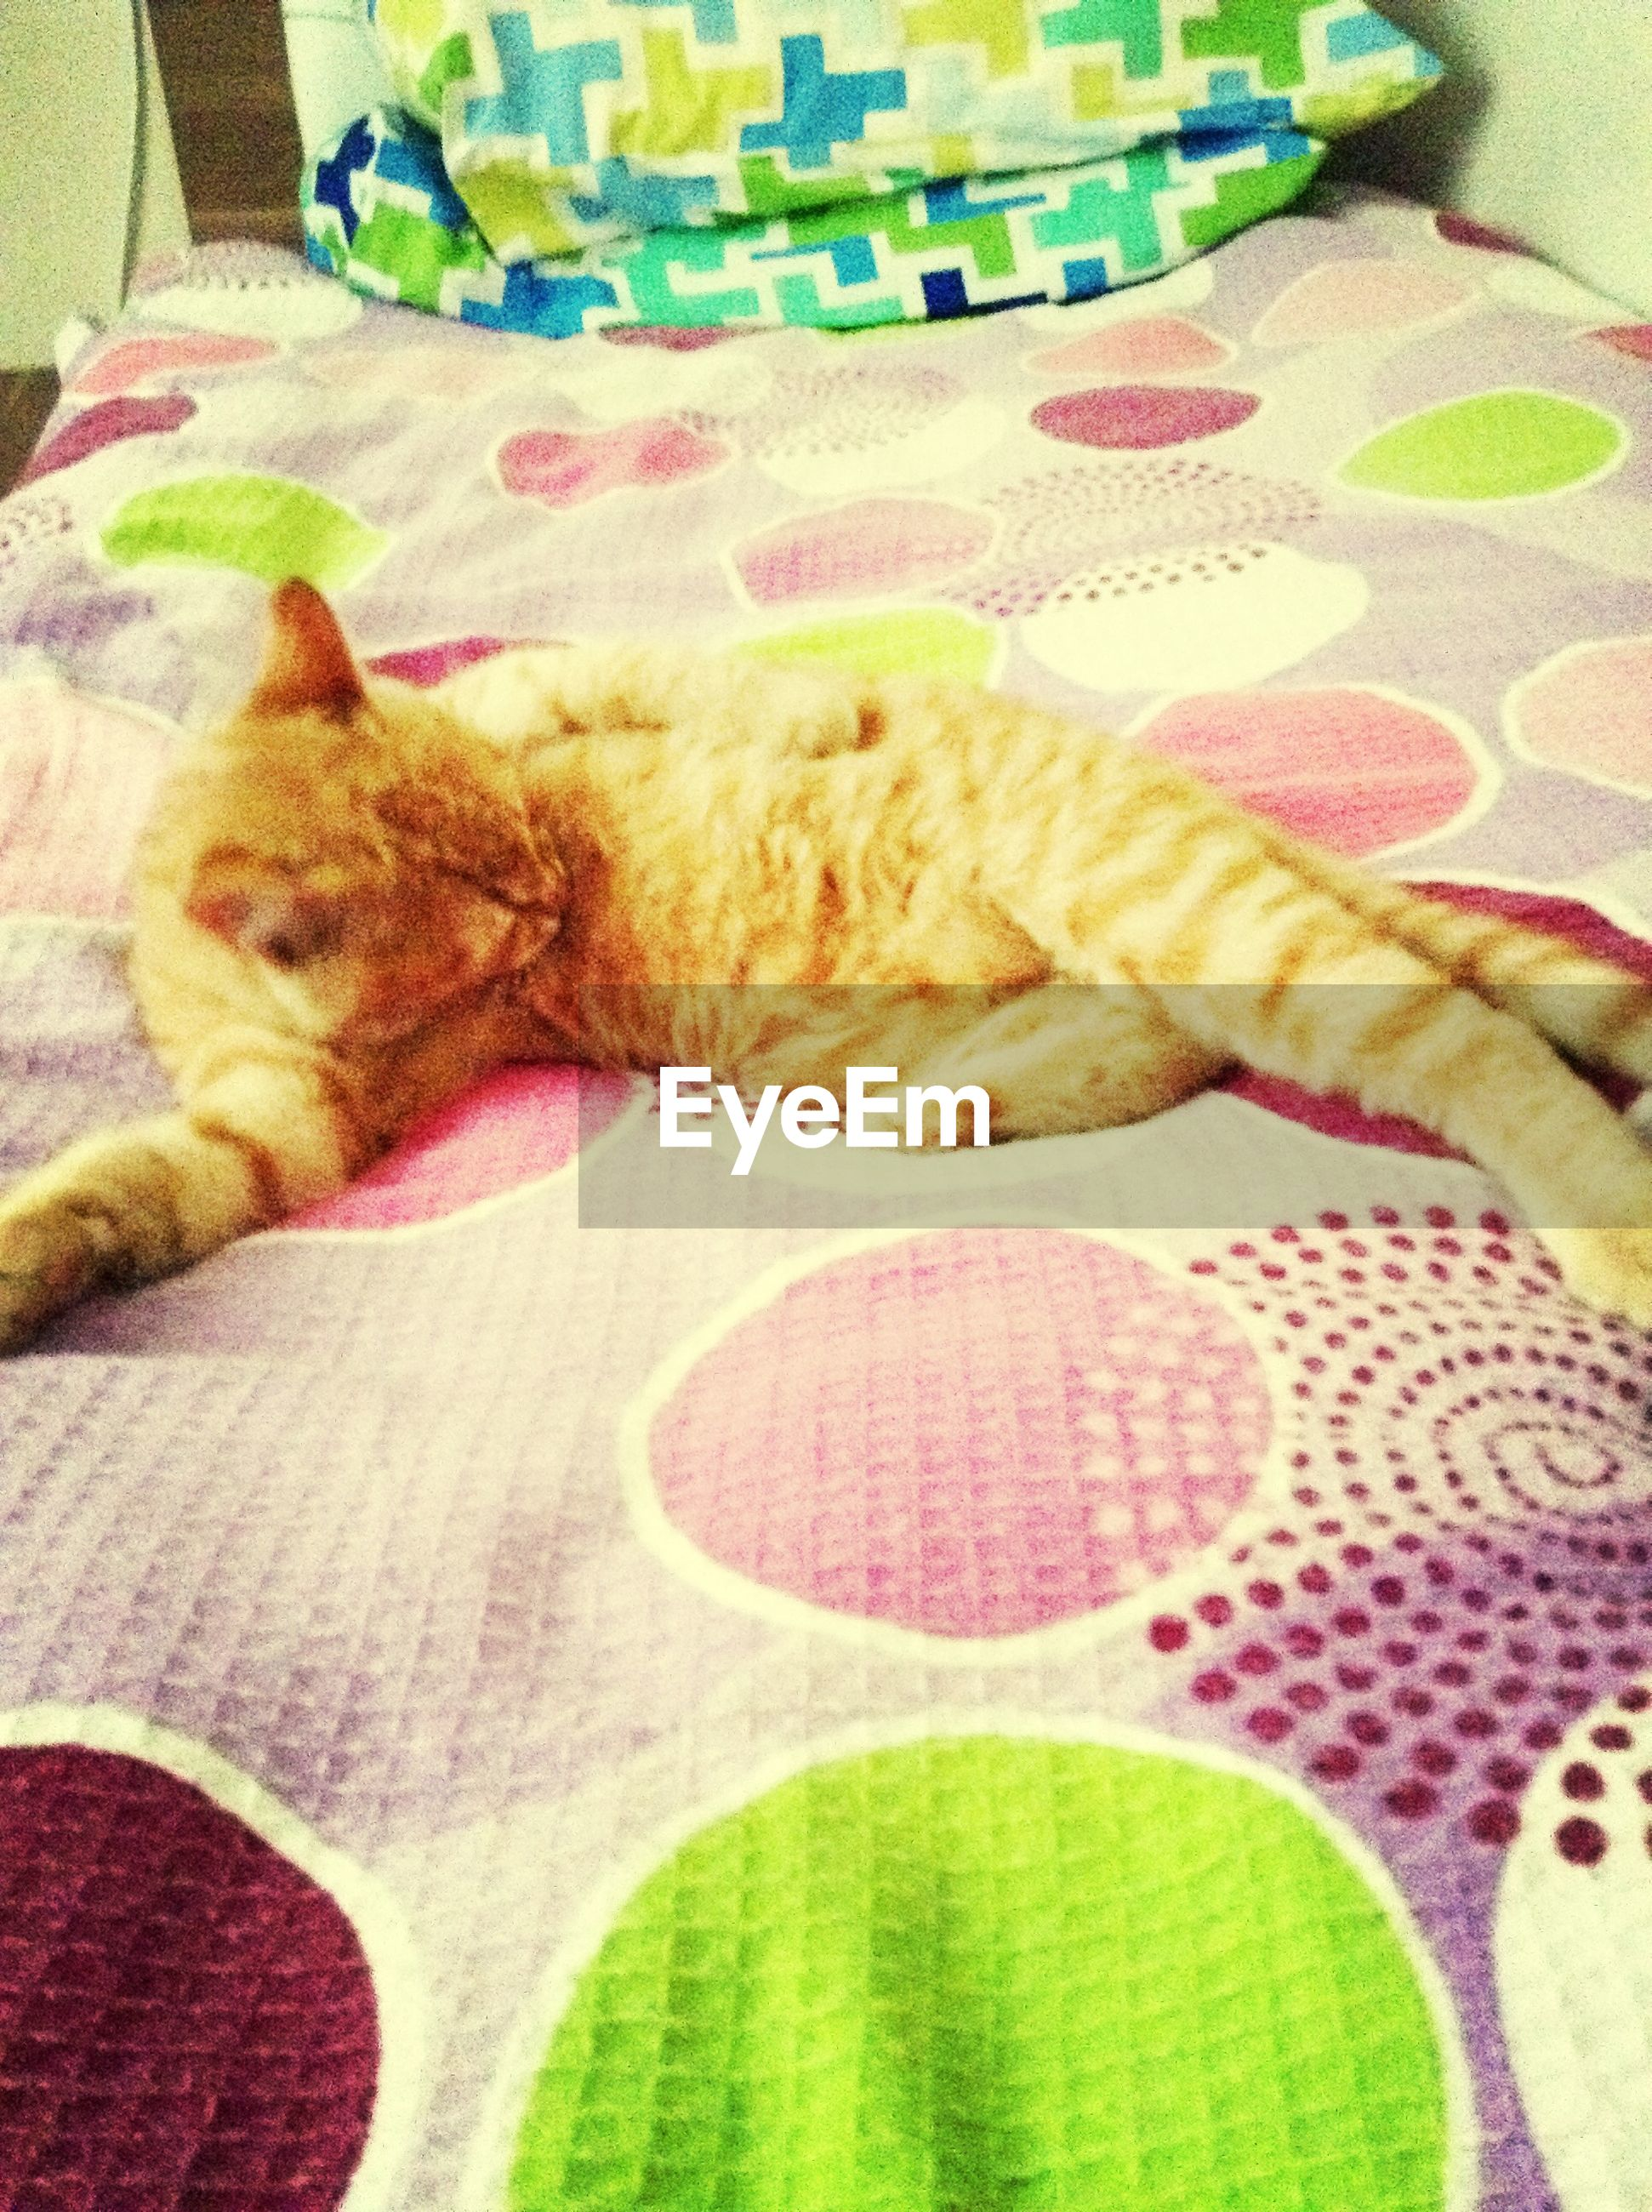 indoors, domestic animals, pets, bed, relaxation, sleeping, mammal, resting, high angle view, domestic cat, home interior, animal themes, cat, blanket, bedroom, sofa, lying down, one animal, sheet, fabric